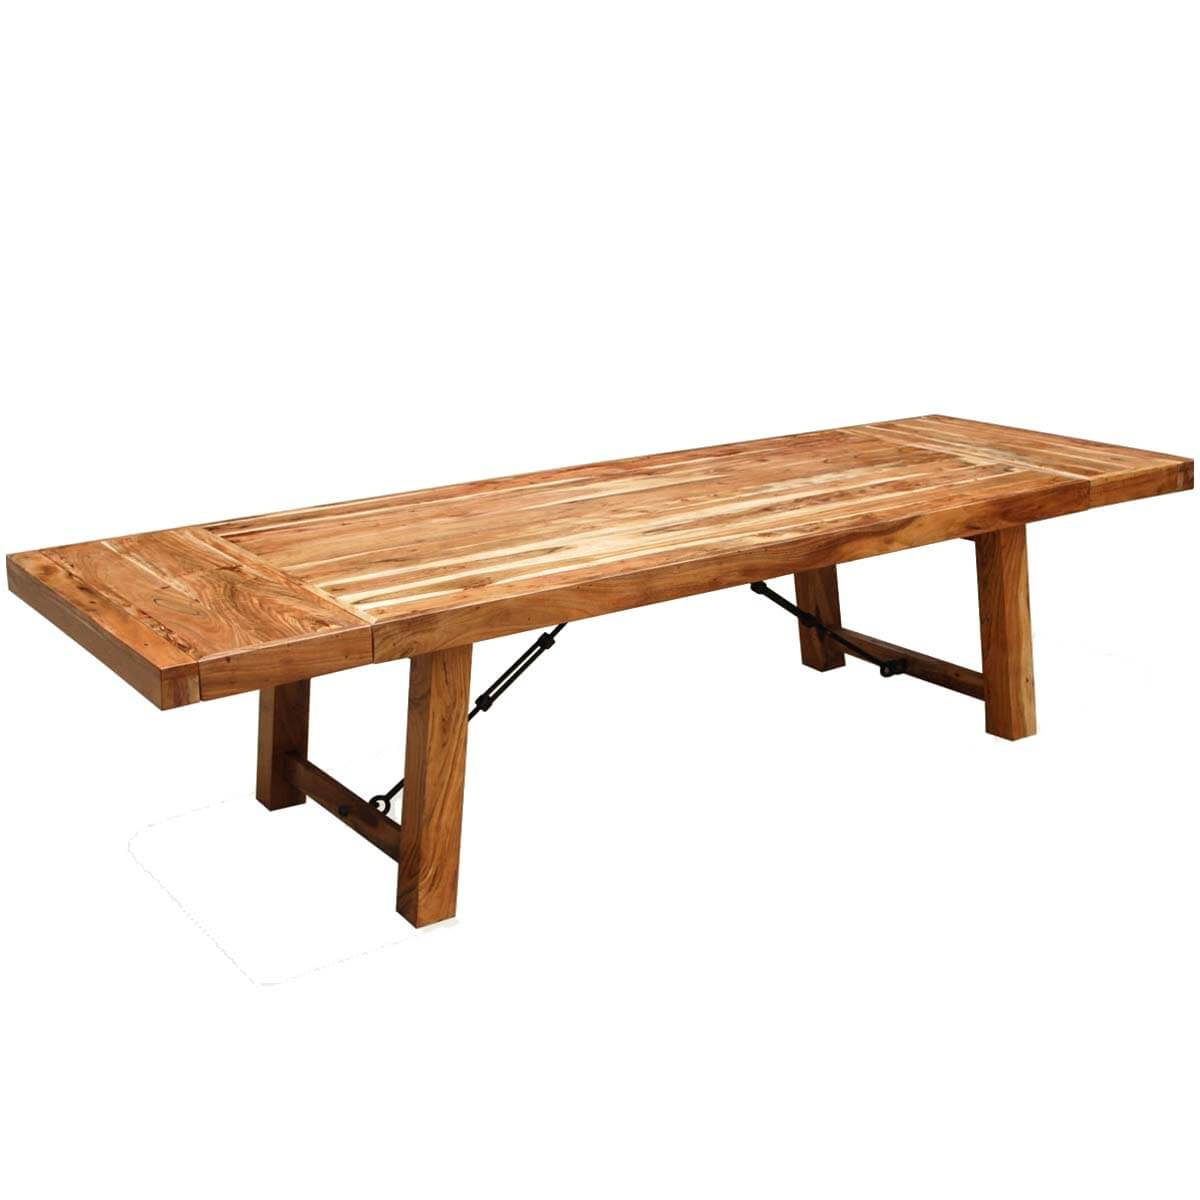 Rustic Wood Large Santa Fe Dining Room Table w Extensions : 4431 from www.sierralivingconcepts.com size 1200 x 1200 jpeg 65kB